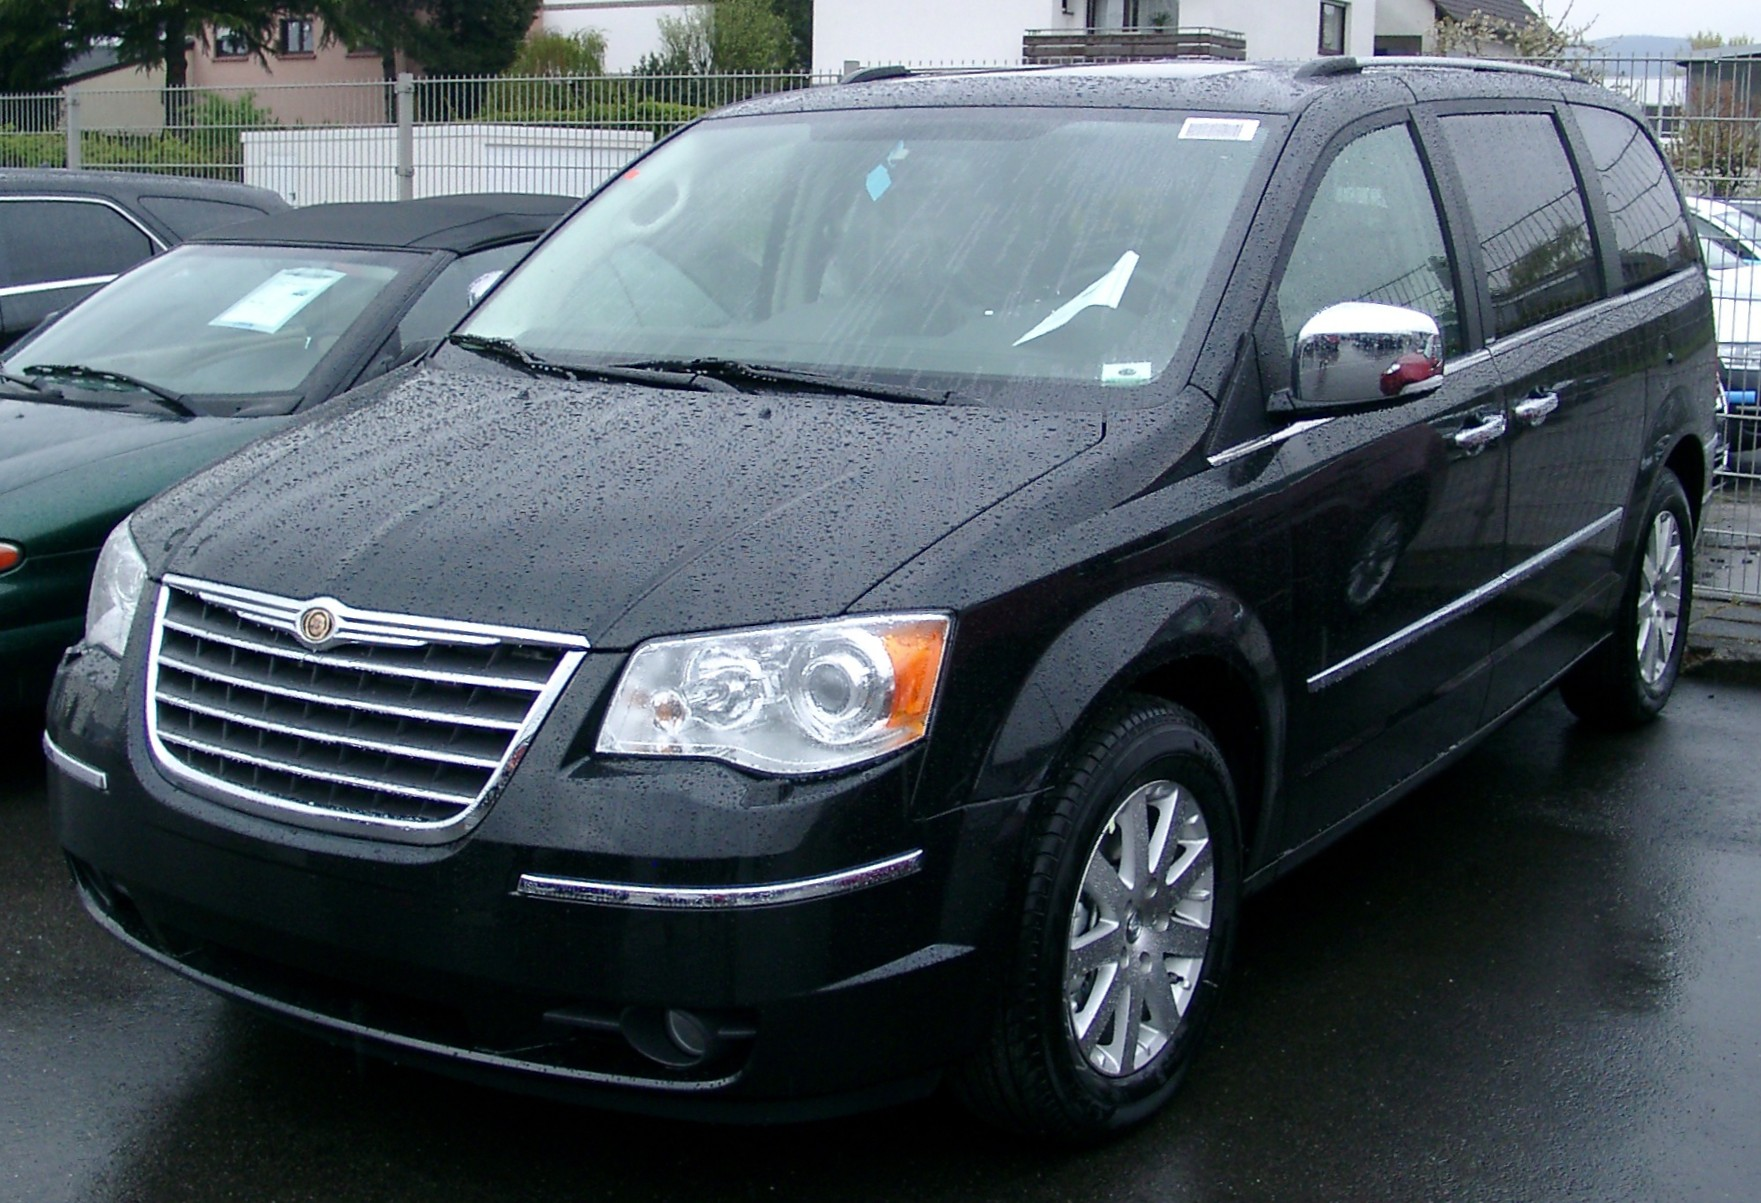 Chrysler Grand Voyager 3.3 2009 photo - 11